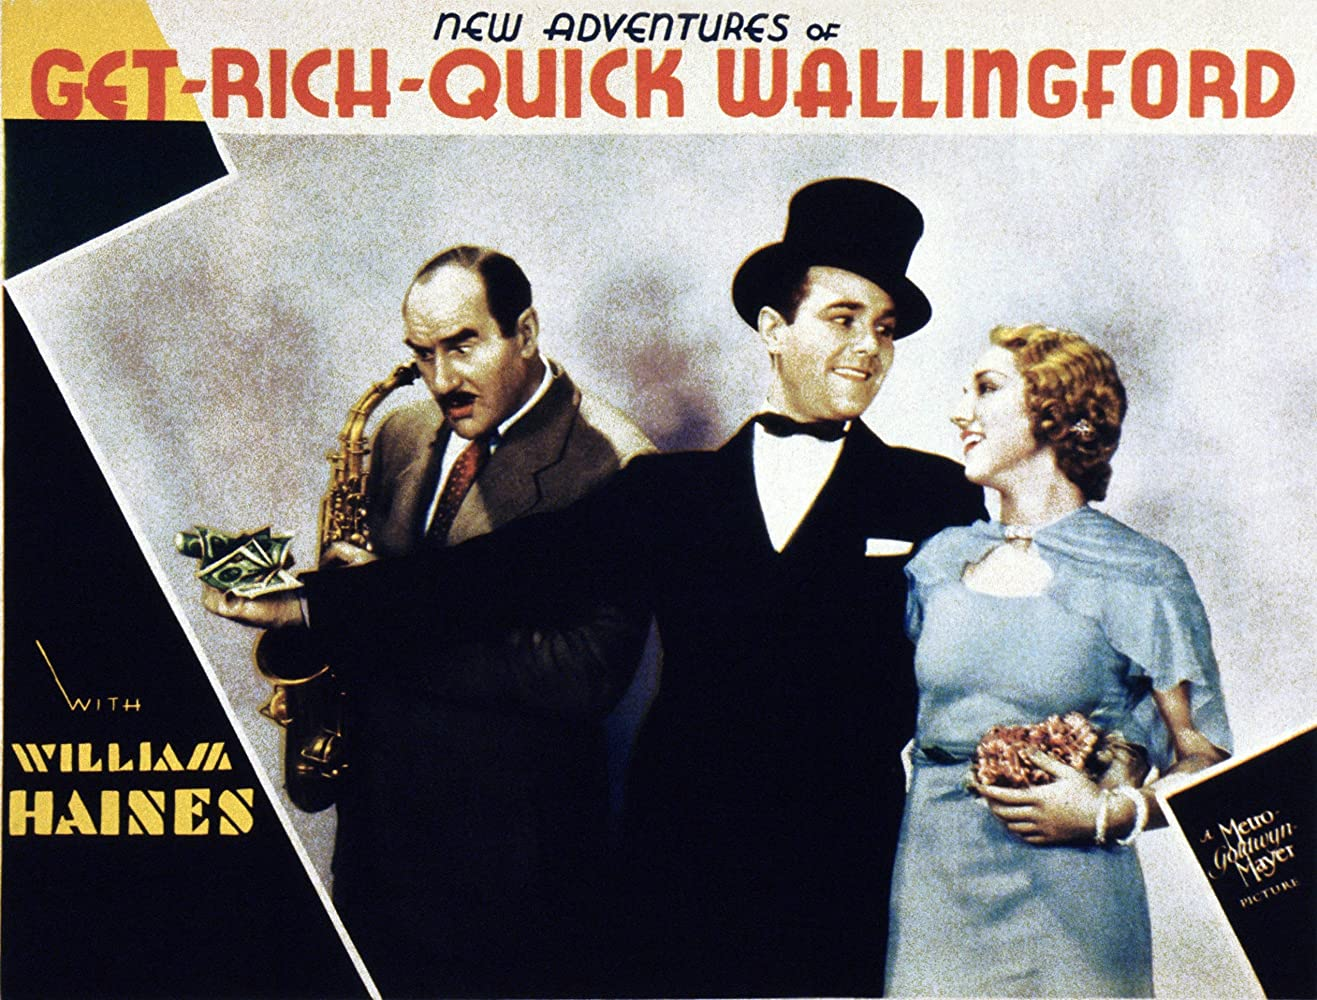 William Haines, Leila Hyams, and Ernest Torrence in New Adventures of Get-Rich-Quick Wallingford (1931)